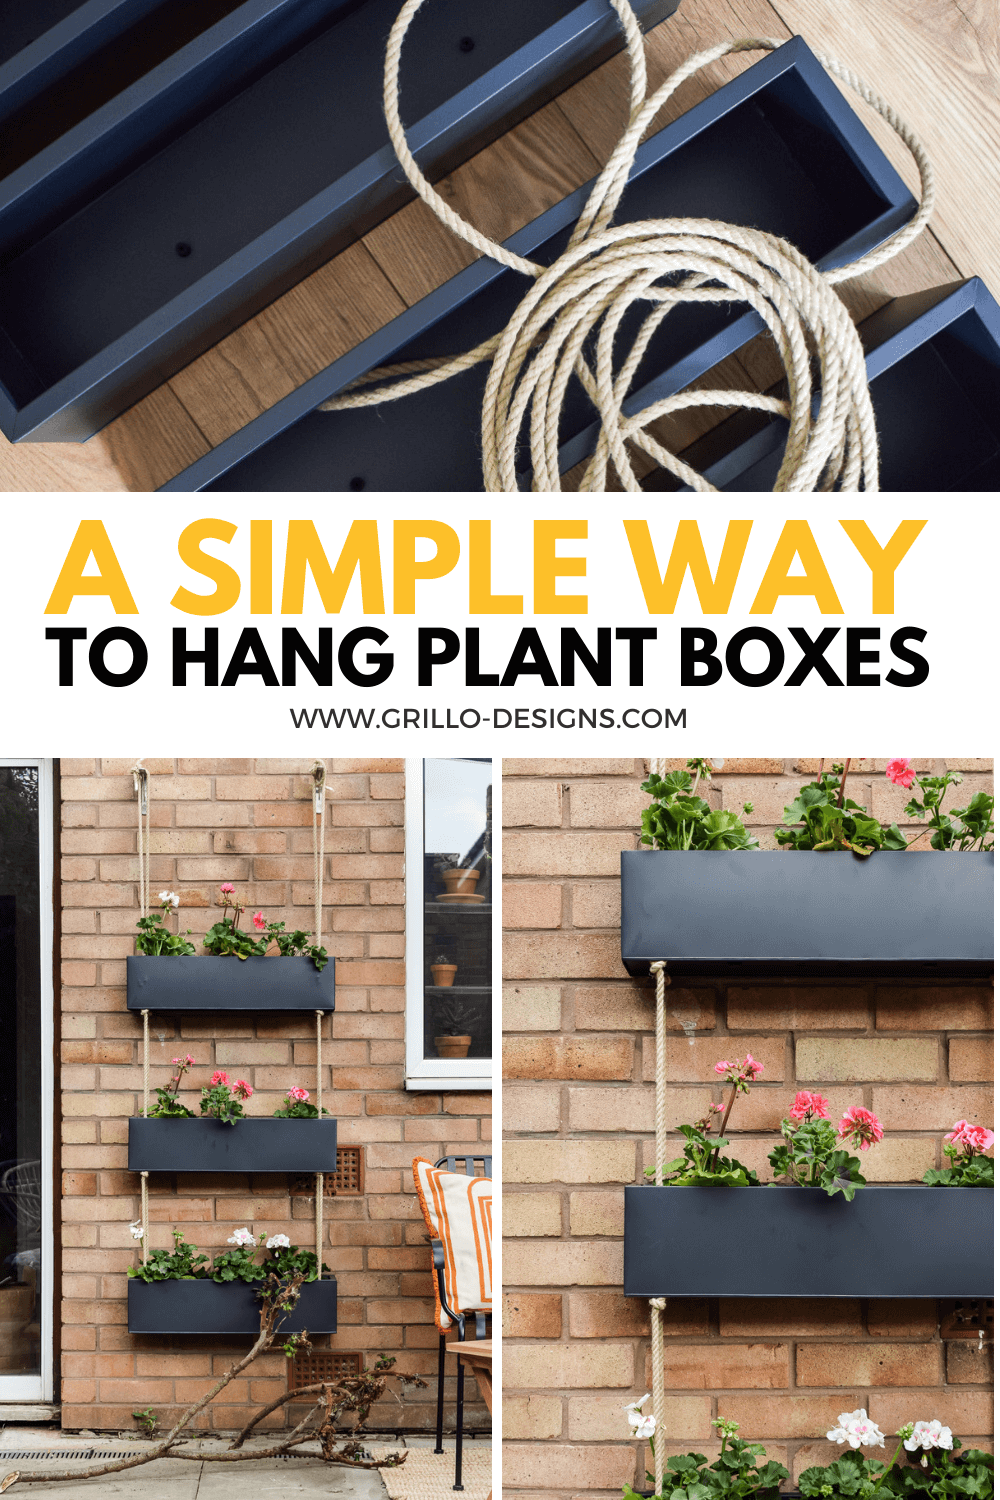 DIY OUTDOOR HANGING PLANTER PINTERST GRAPHIC